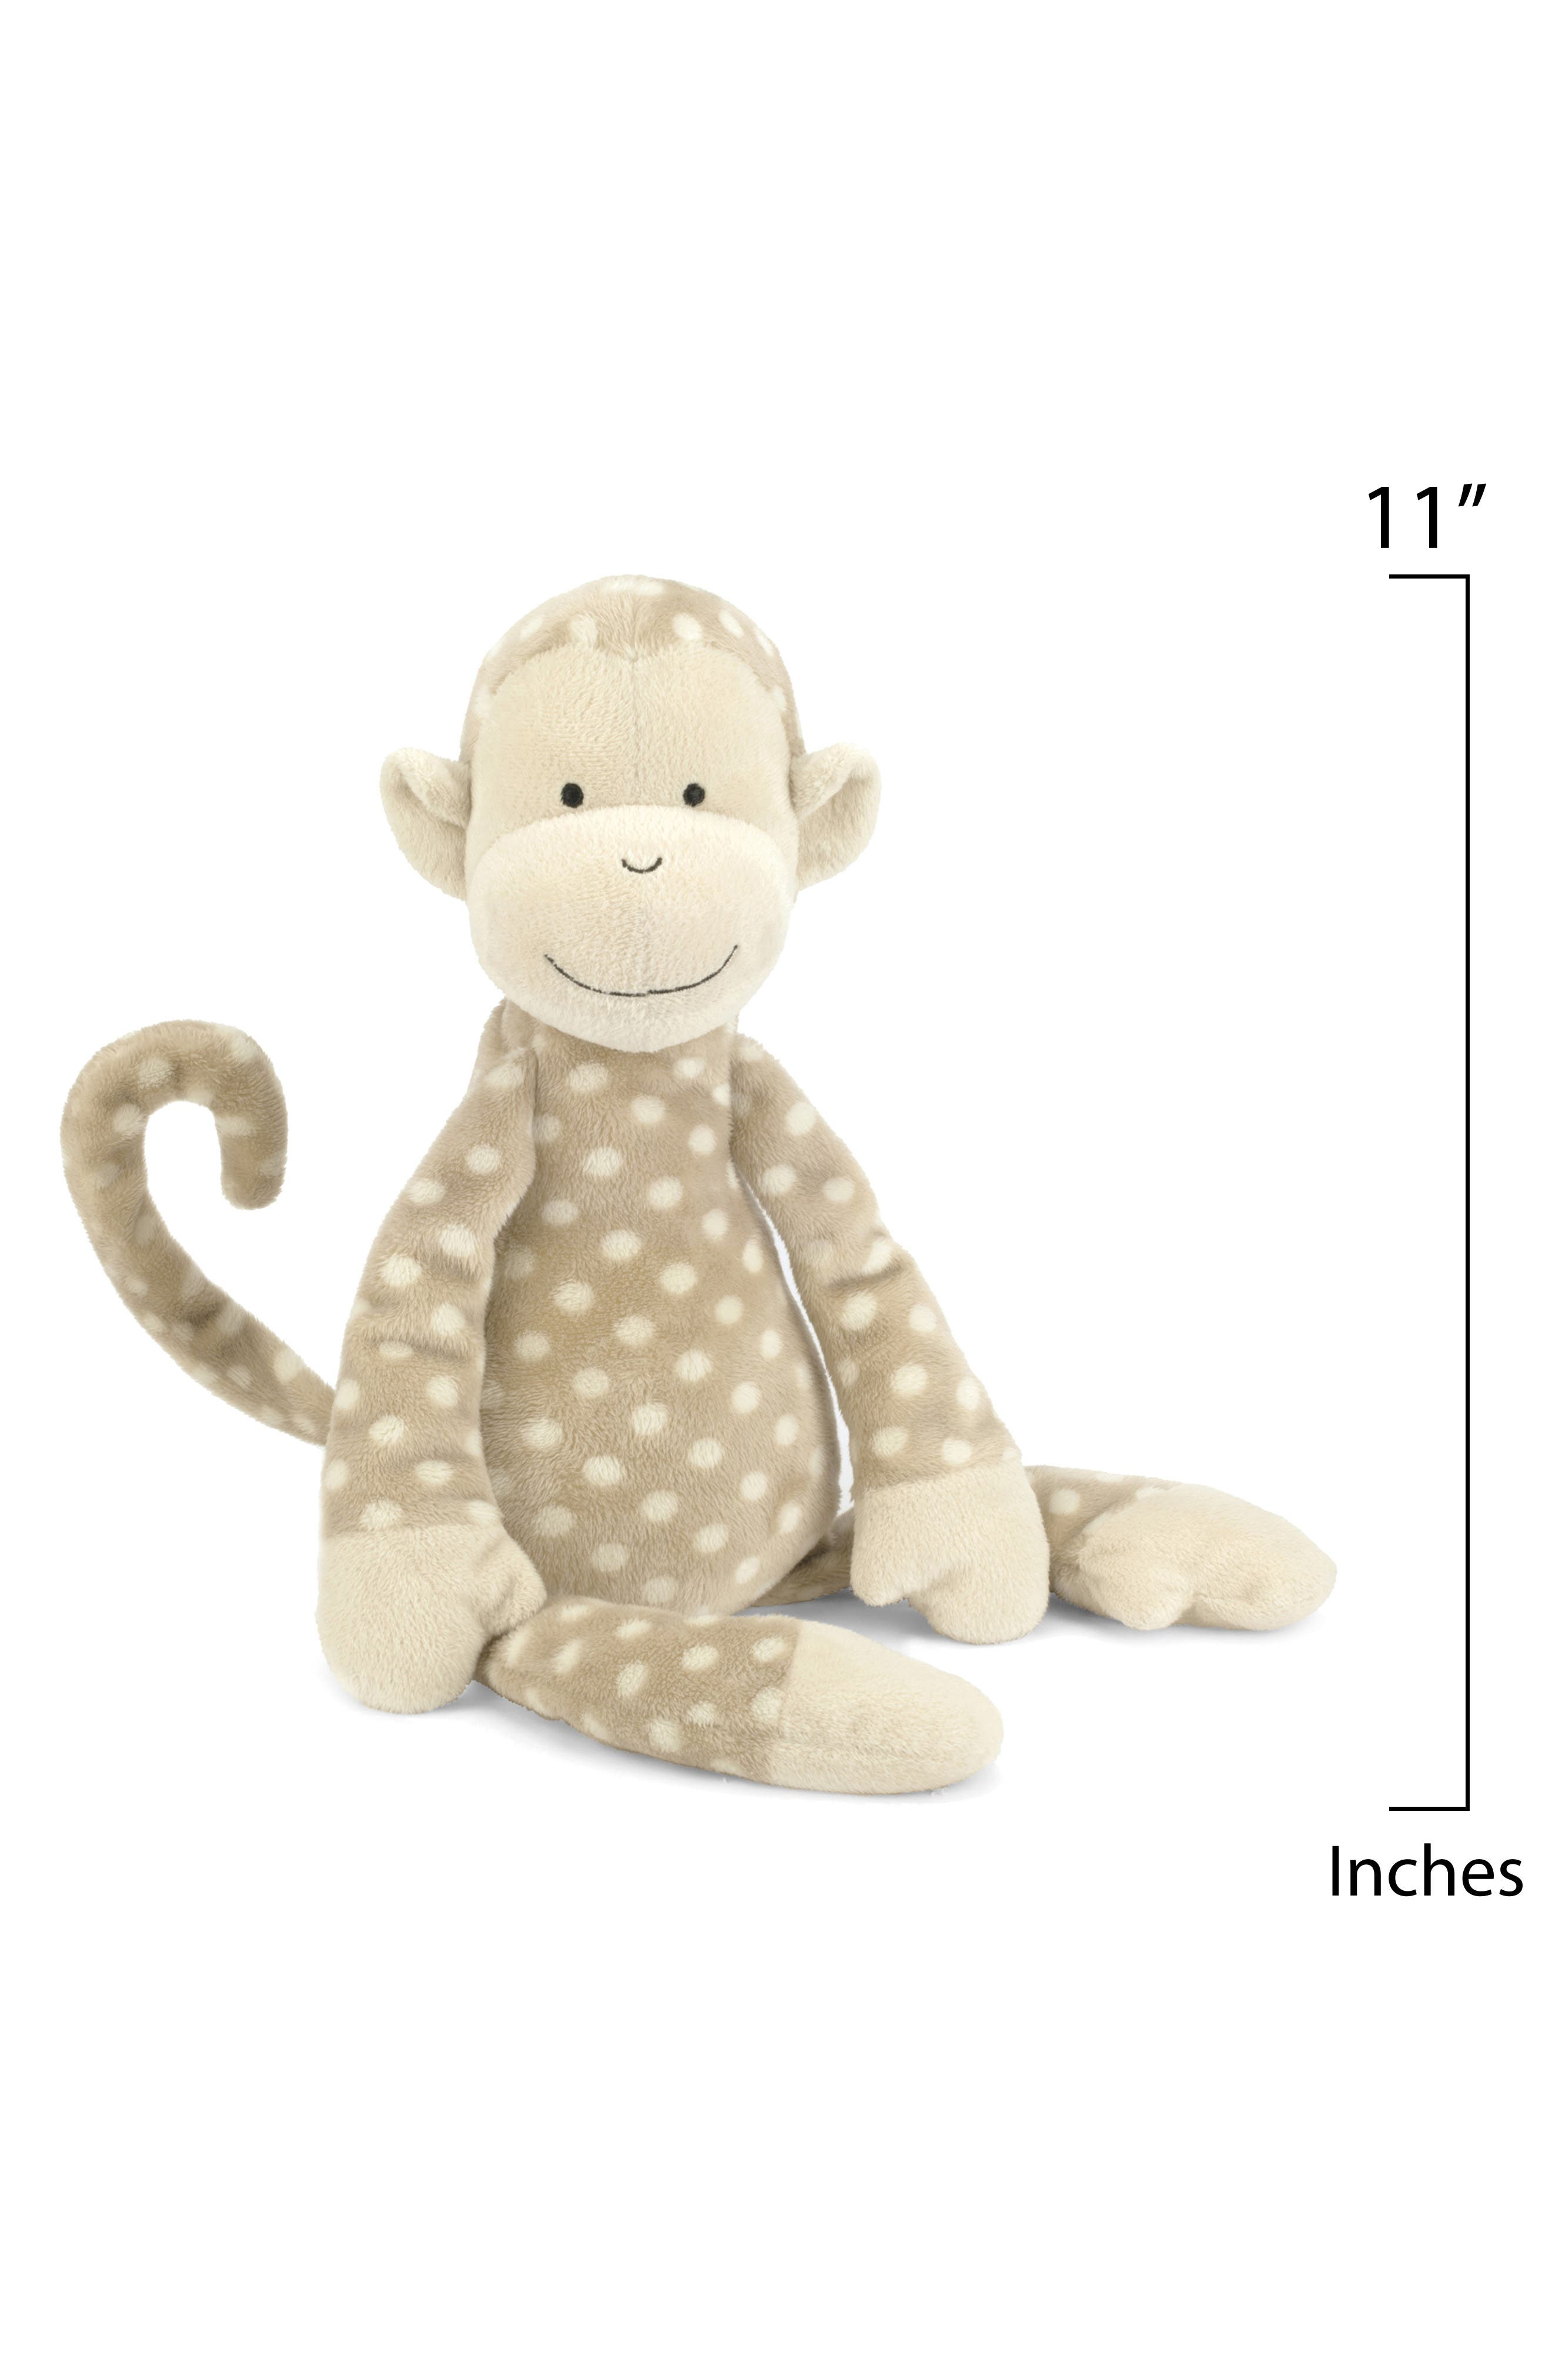 'Monty Monkey' Stuffed Animal,                             Alternate thumbnail 2, color,                             Brown/ Cream